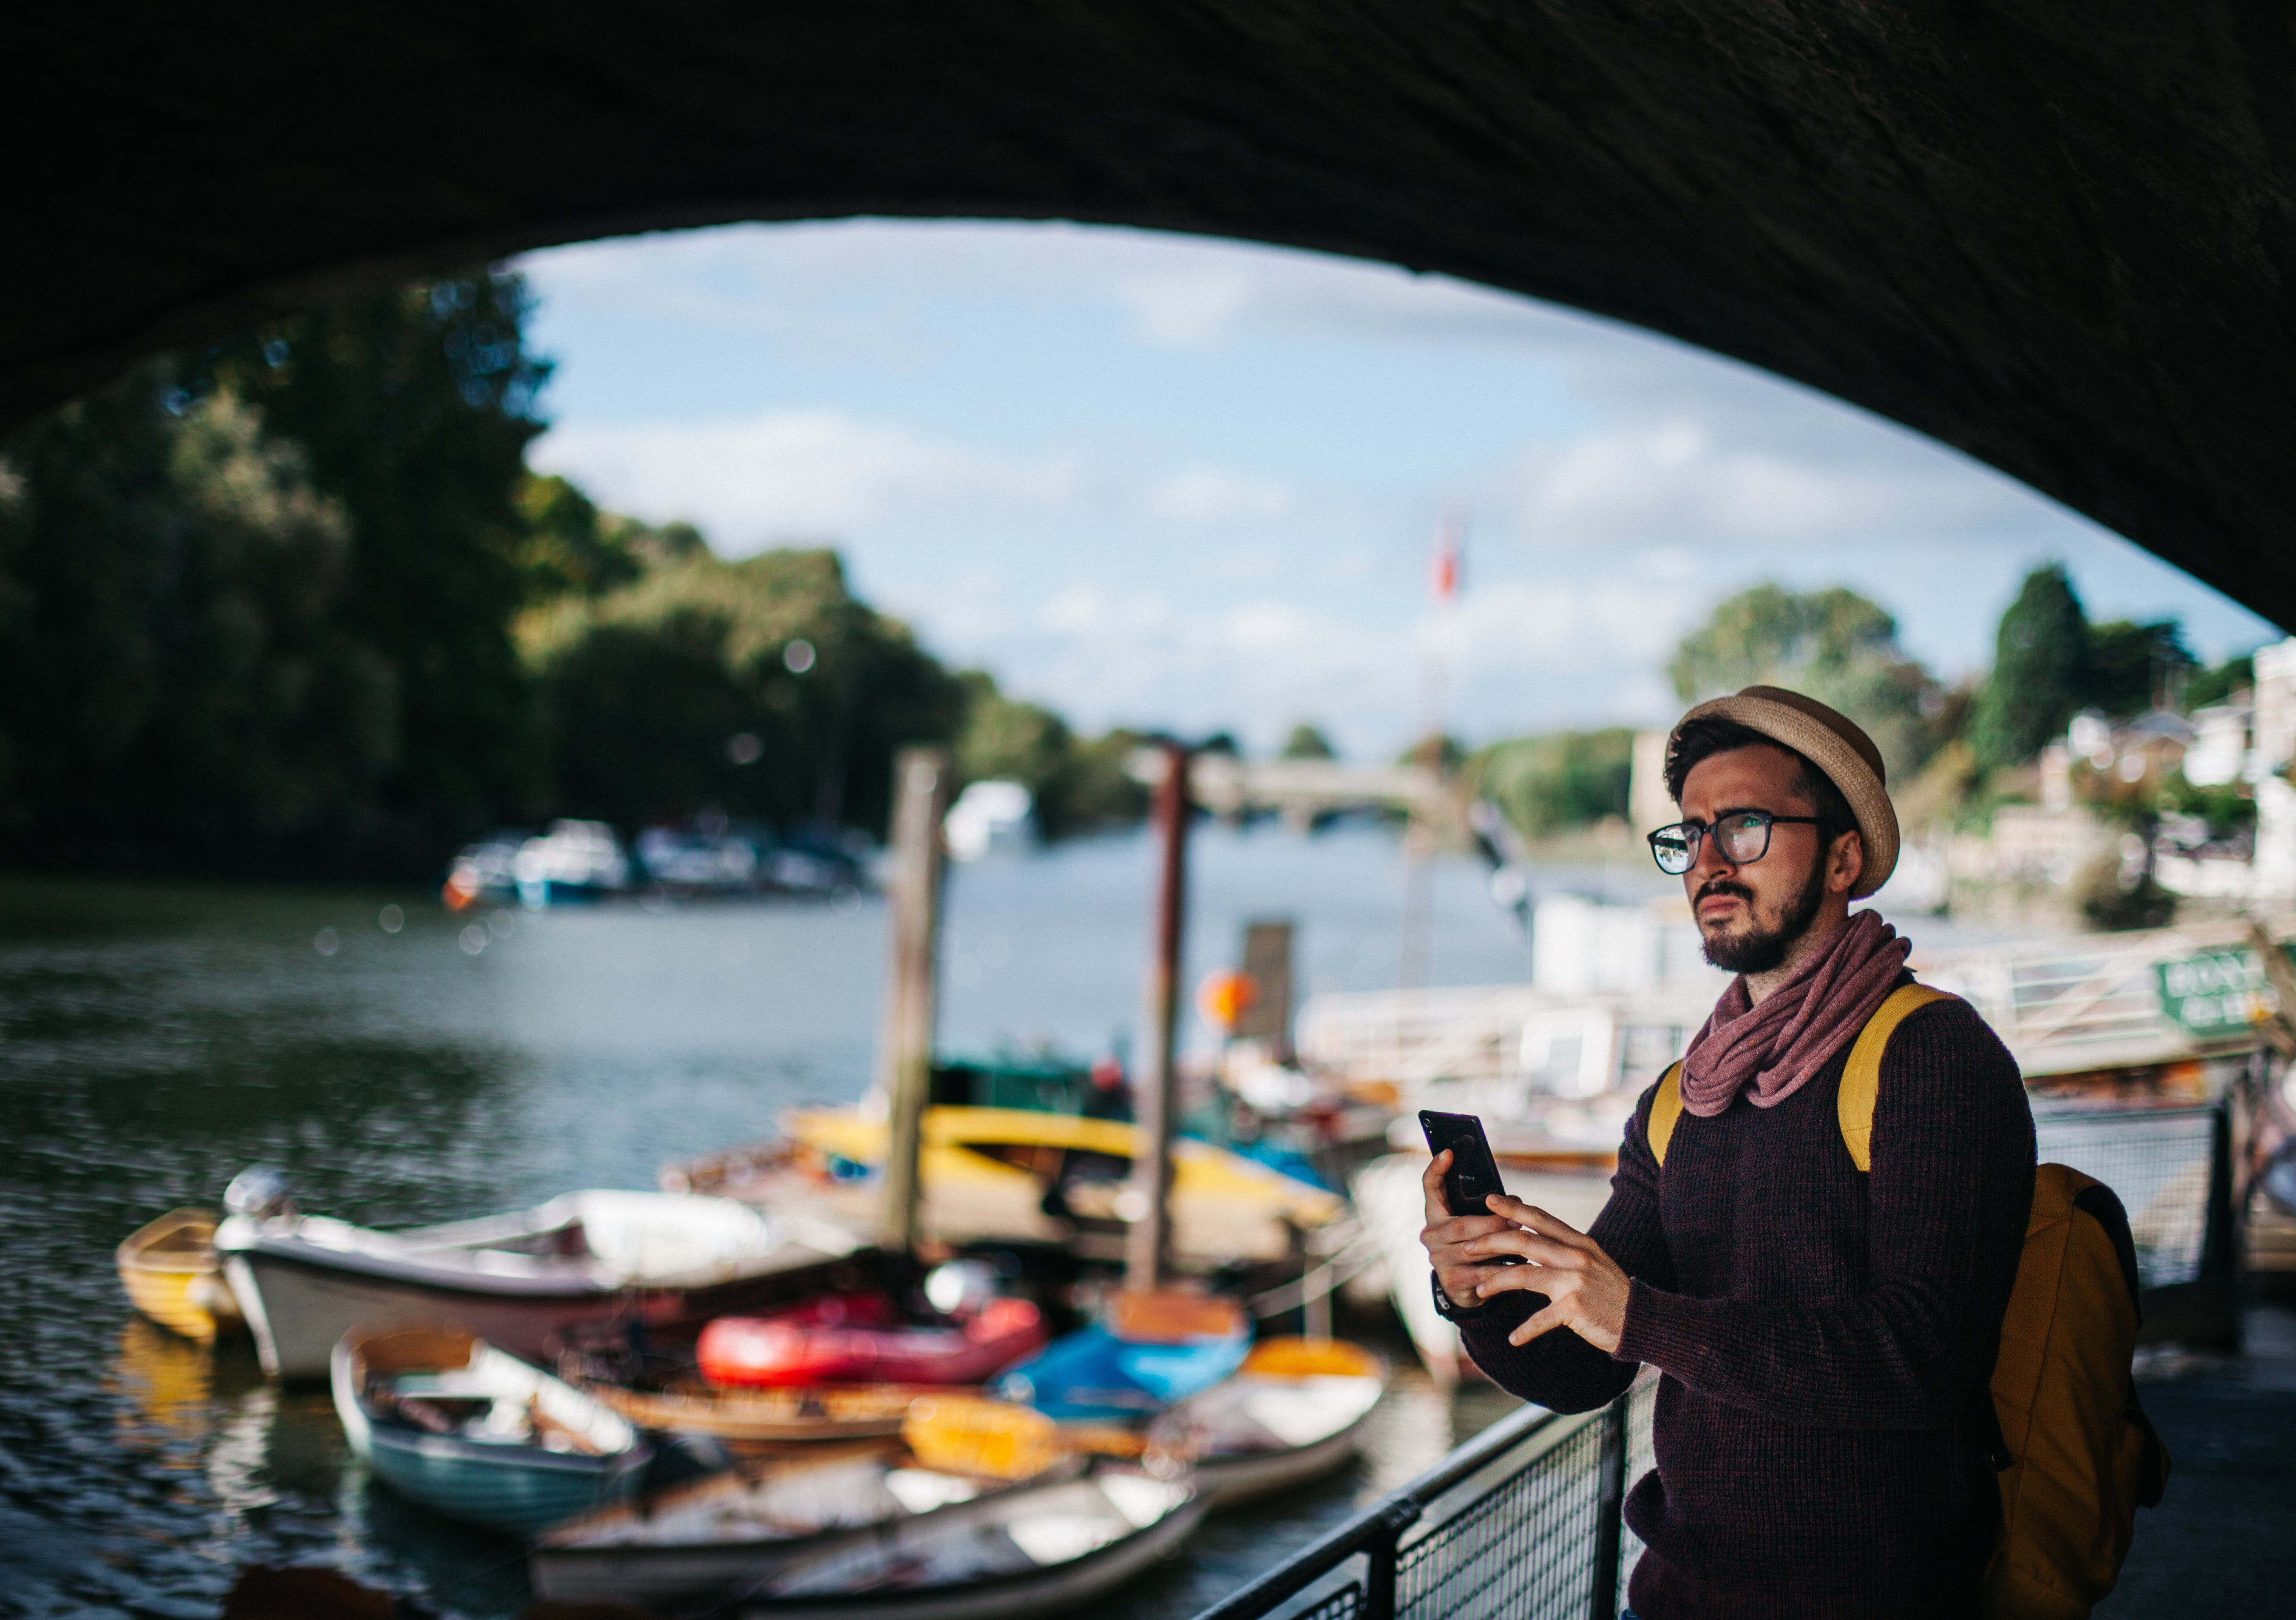 Man Holding Smartphone Near Boats